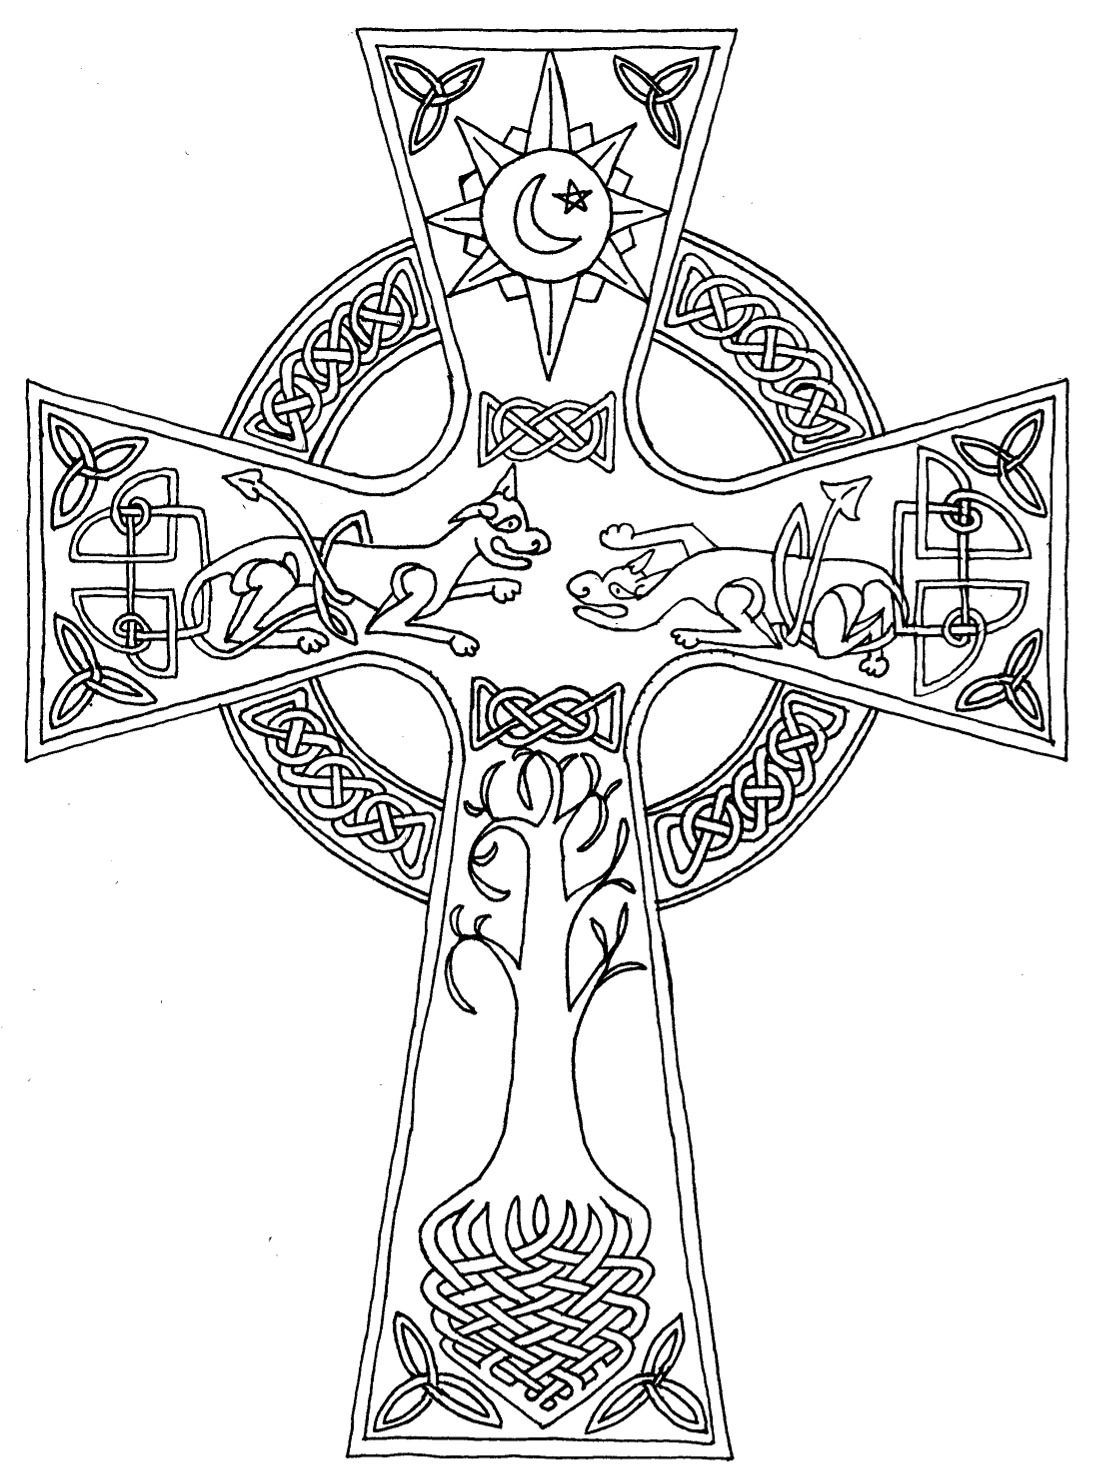 celtic-cross-coloring-pages-16.jpg | Coloring Pages | Pinterest ...